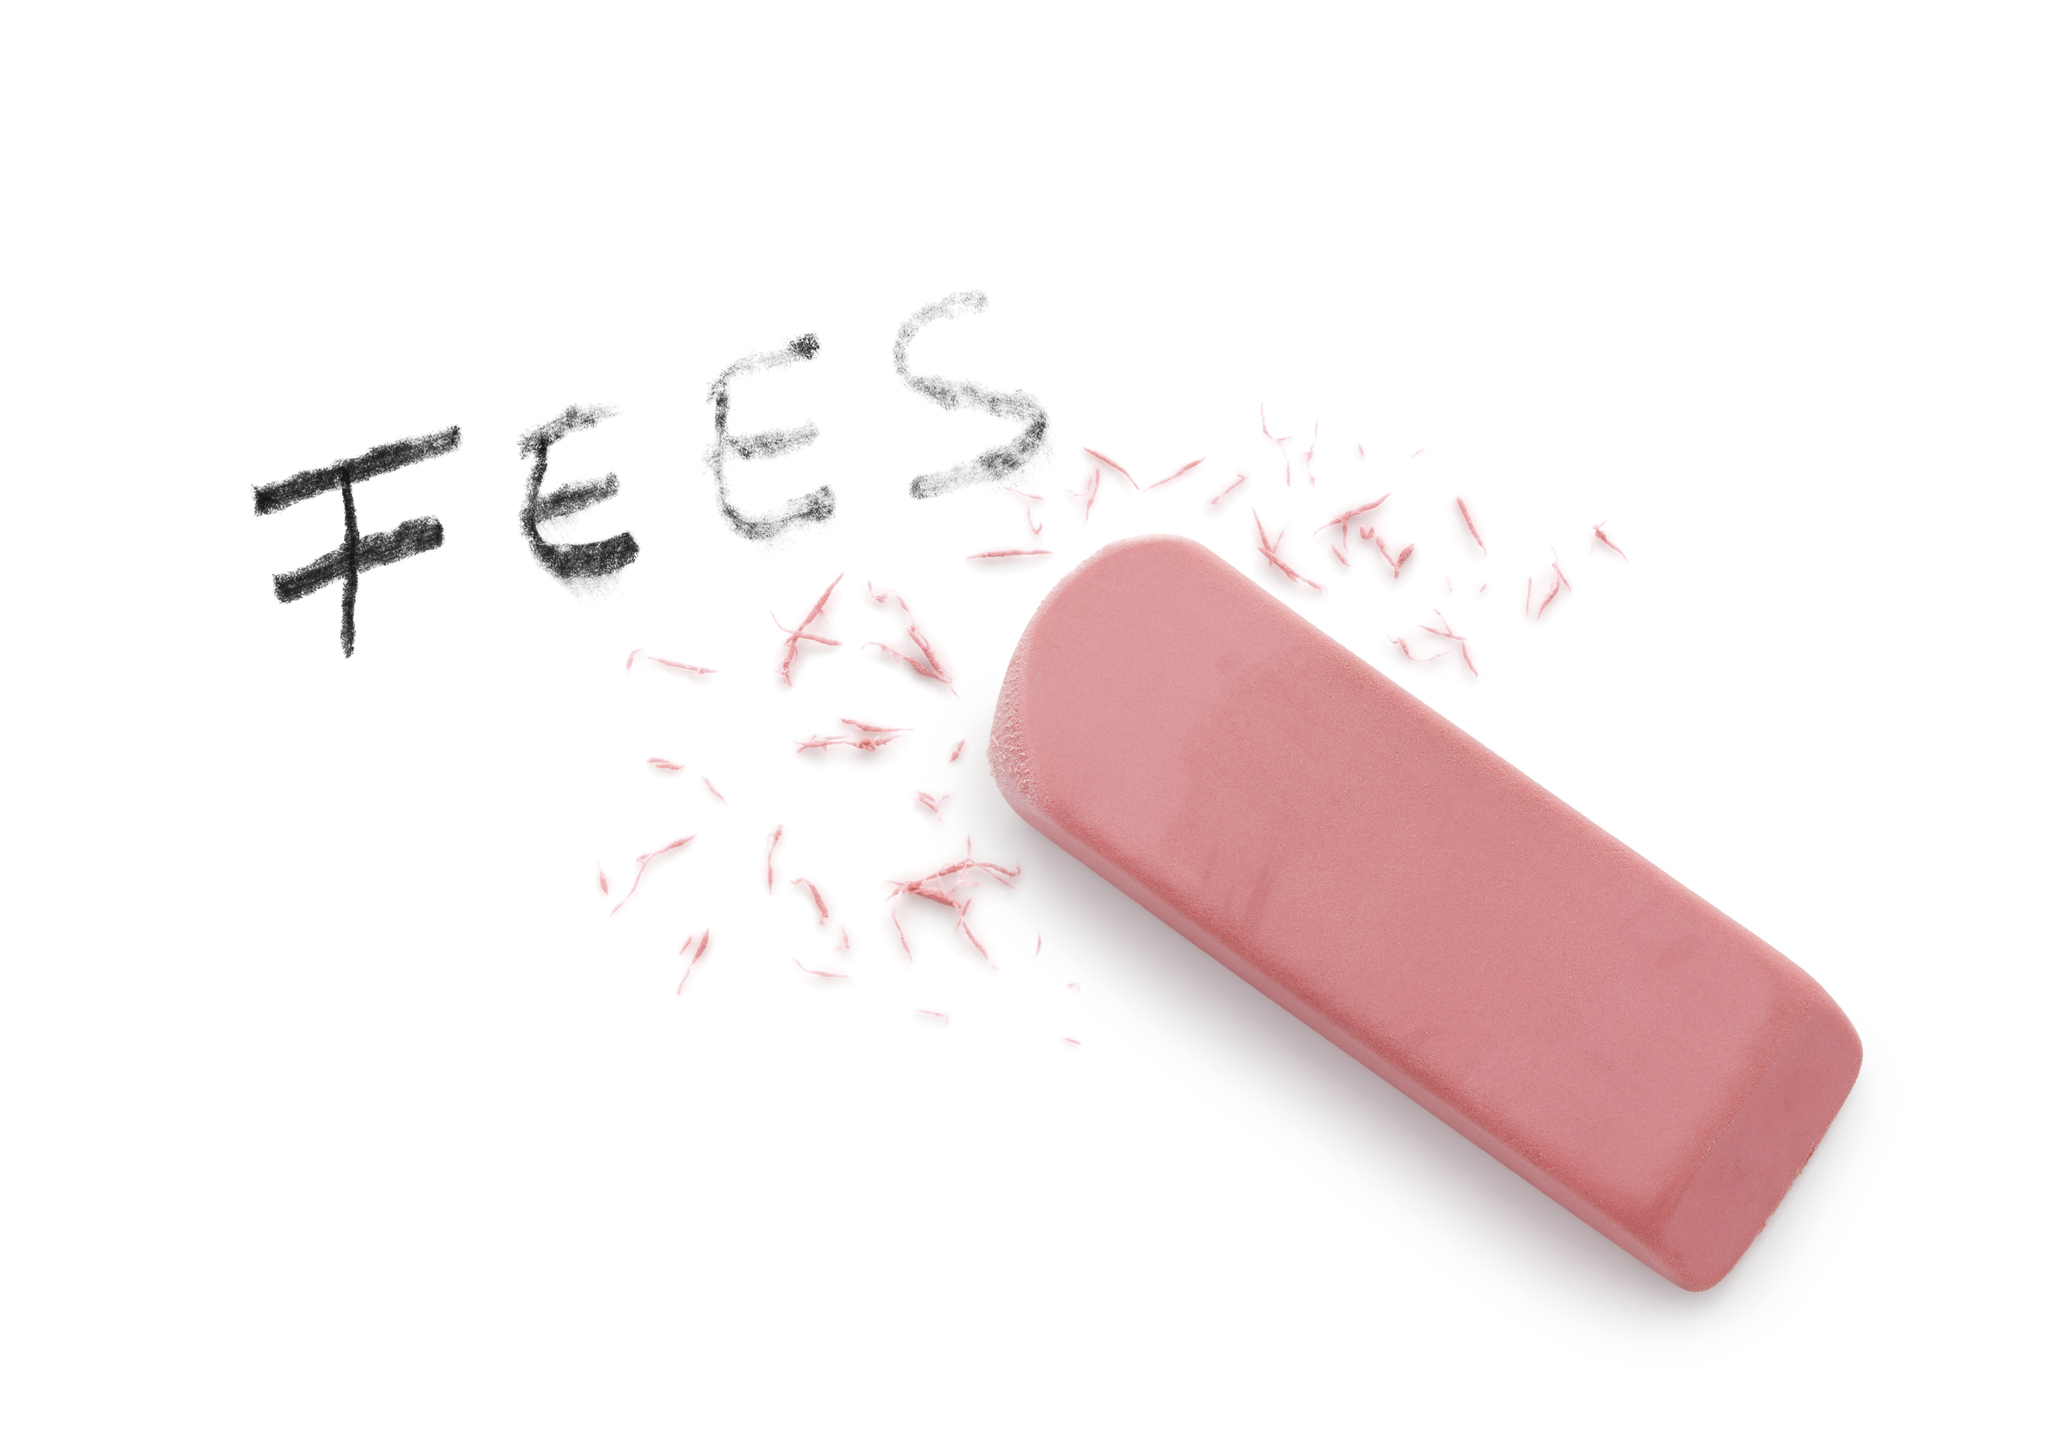 New letting fees cap for tenants leaving rented homes - Image showing an eraser rubbing out the word fees